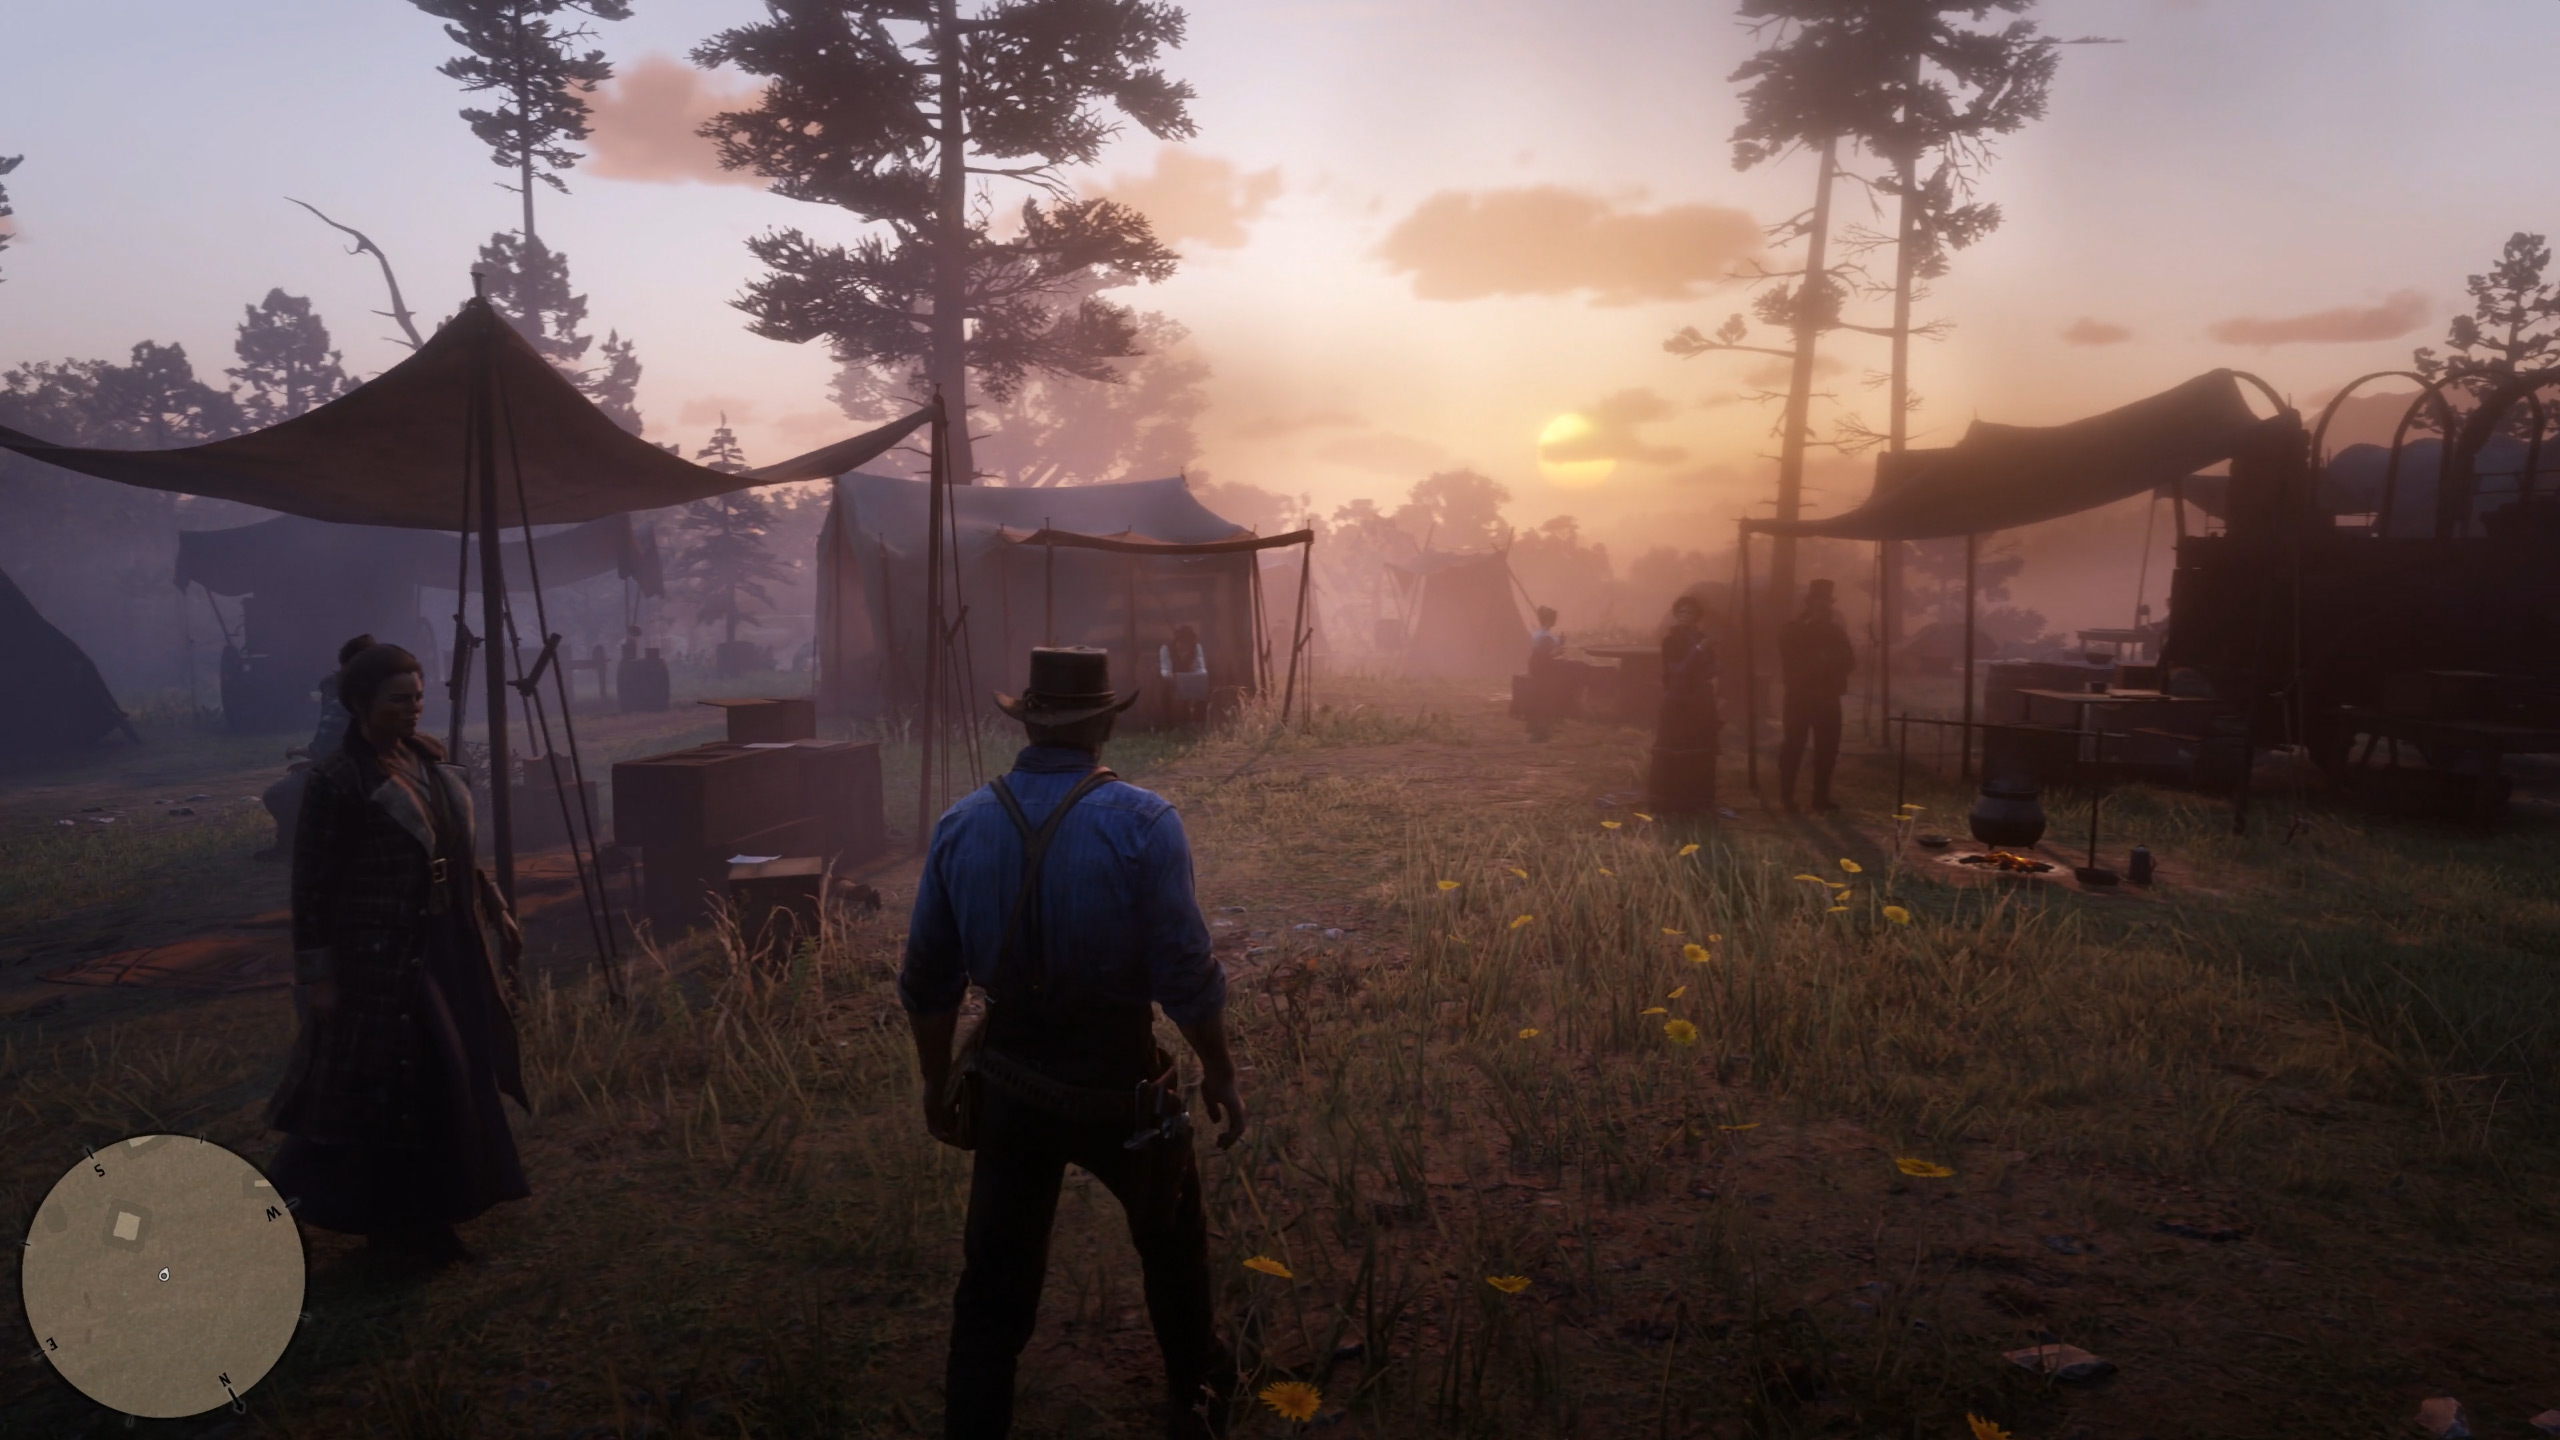 red dead redemption analysis Watch us react to red dead's dark tone, new characters, and gameplay hints.